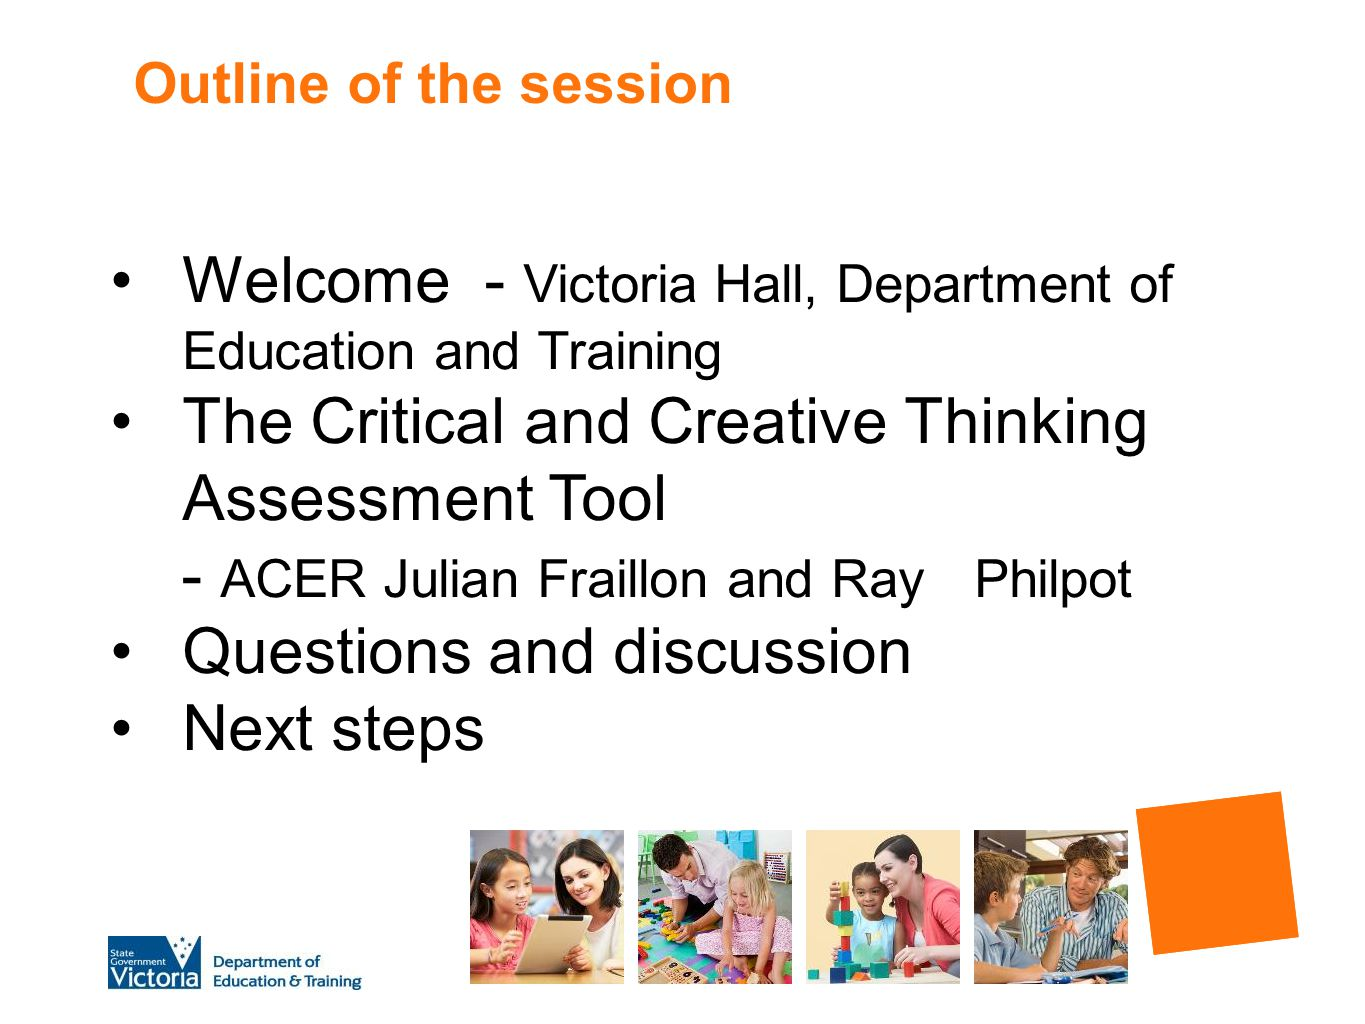 Welcome - Victoria Hall, Department of Education and Training